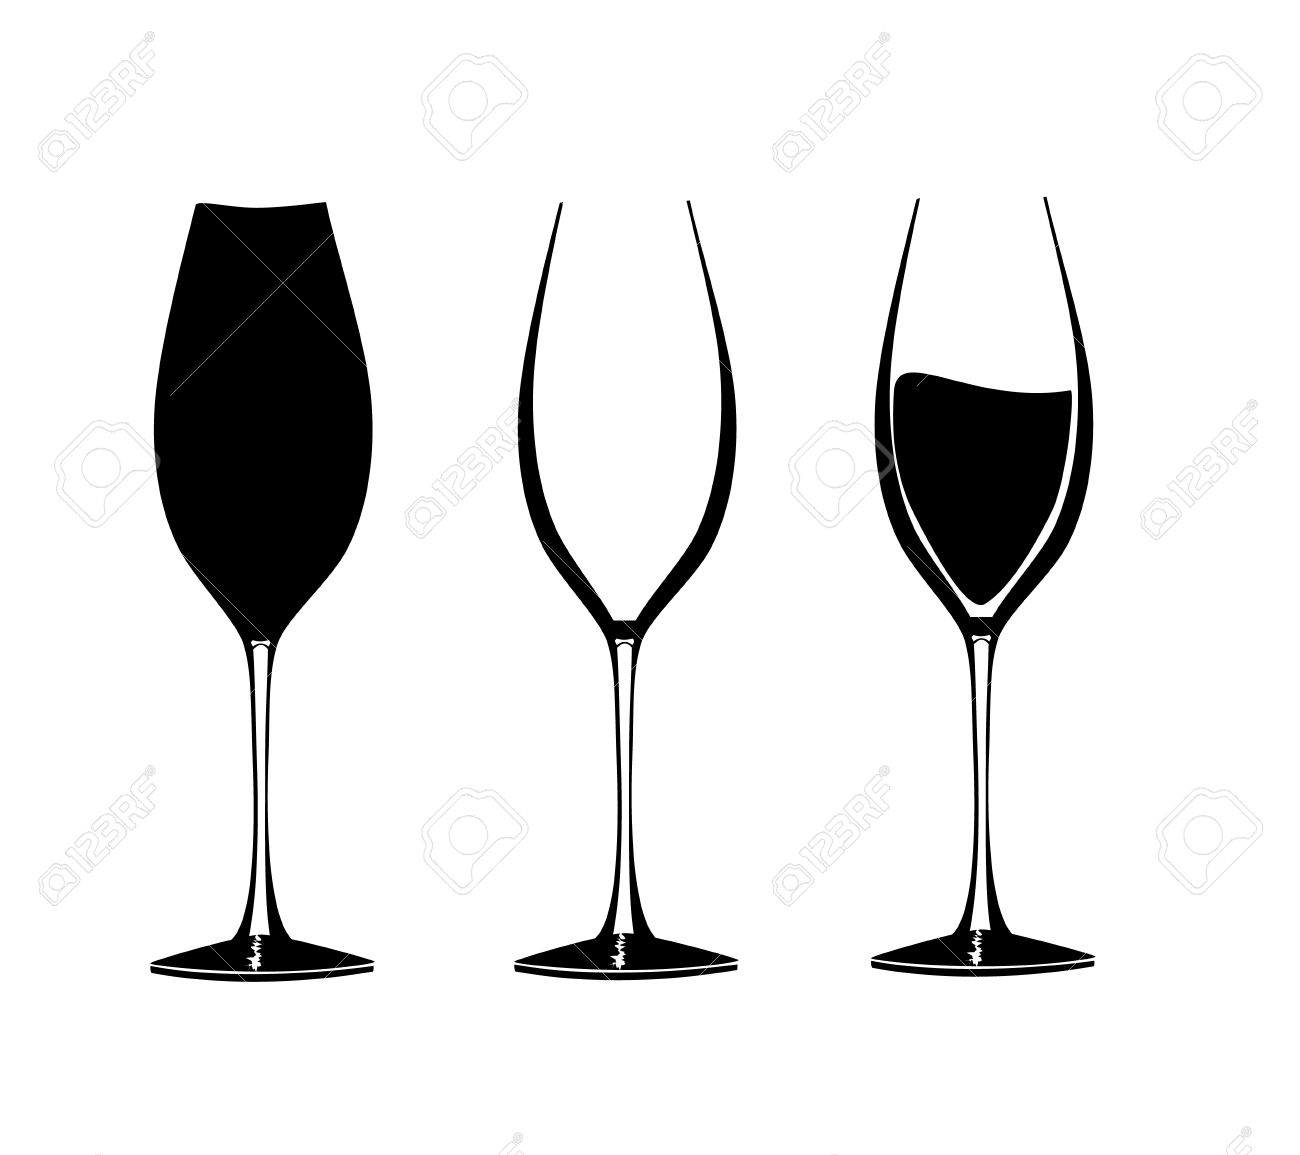 1300x1155 Quotes About Wine On Wine Glass Silhouette Calligraphy... Vectors